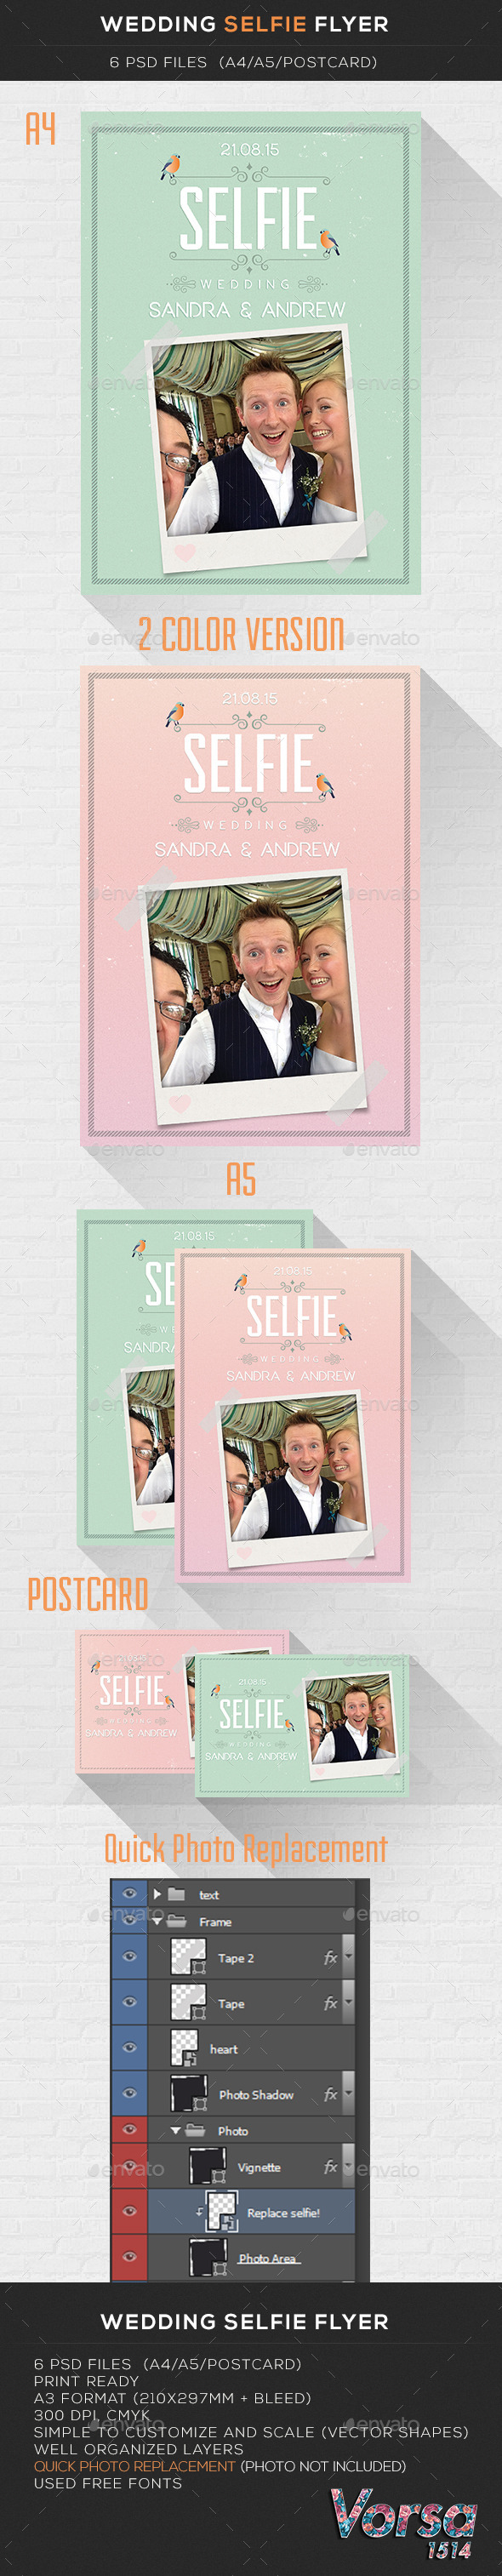 GraphicRiver Wedding Selfie Flyer 10108774